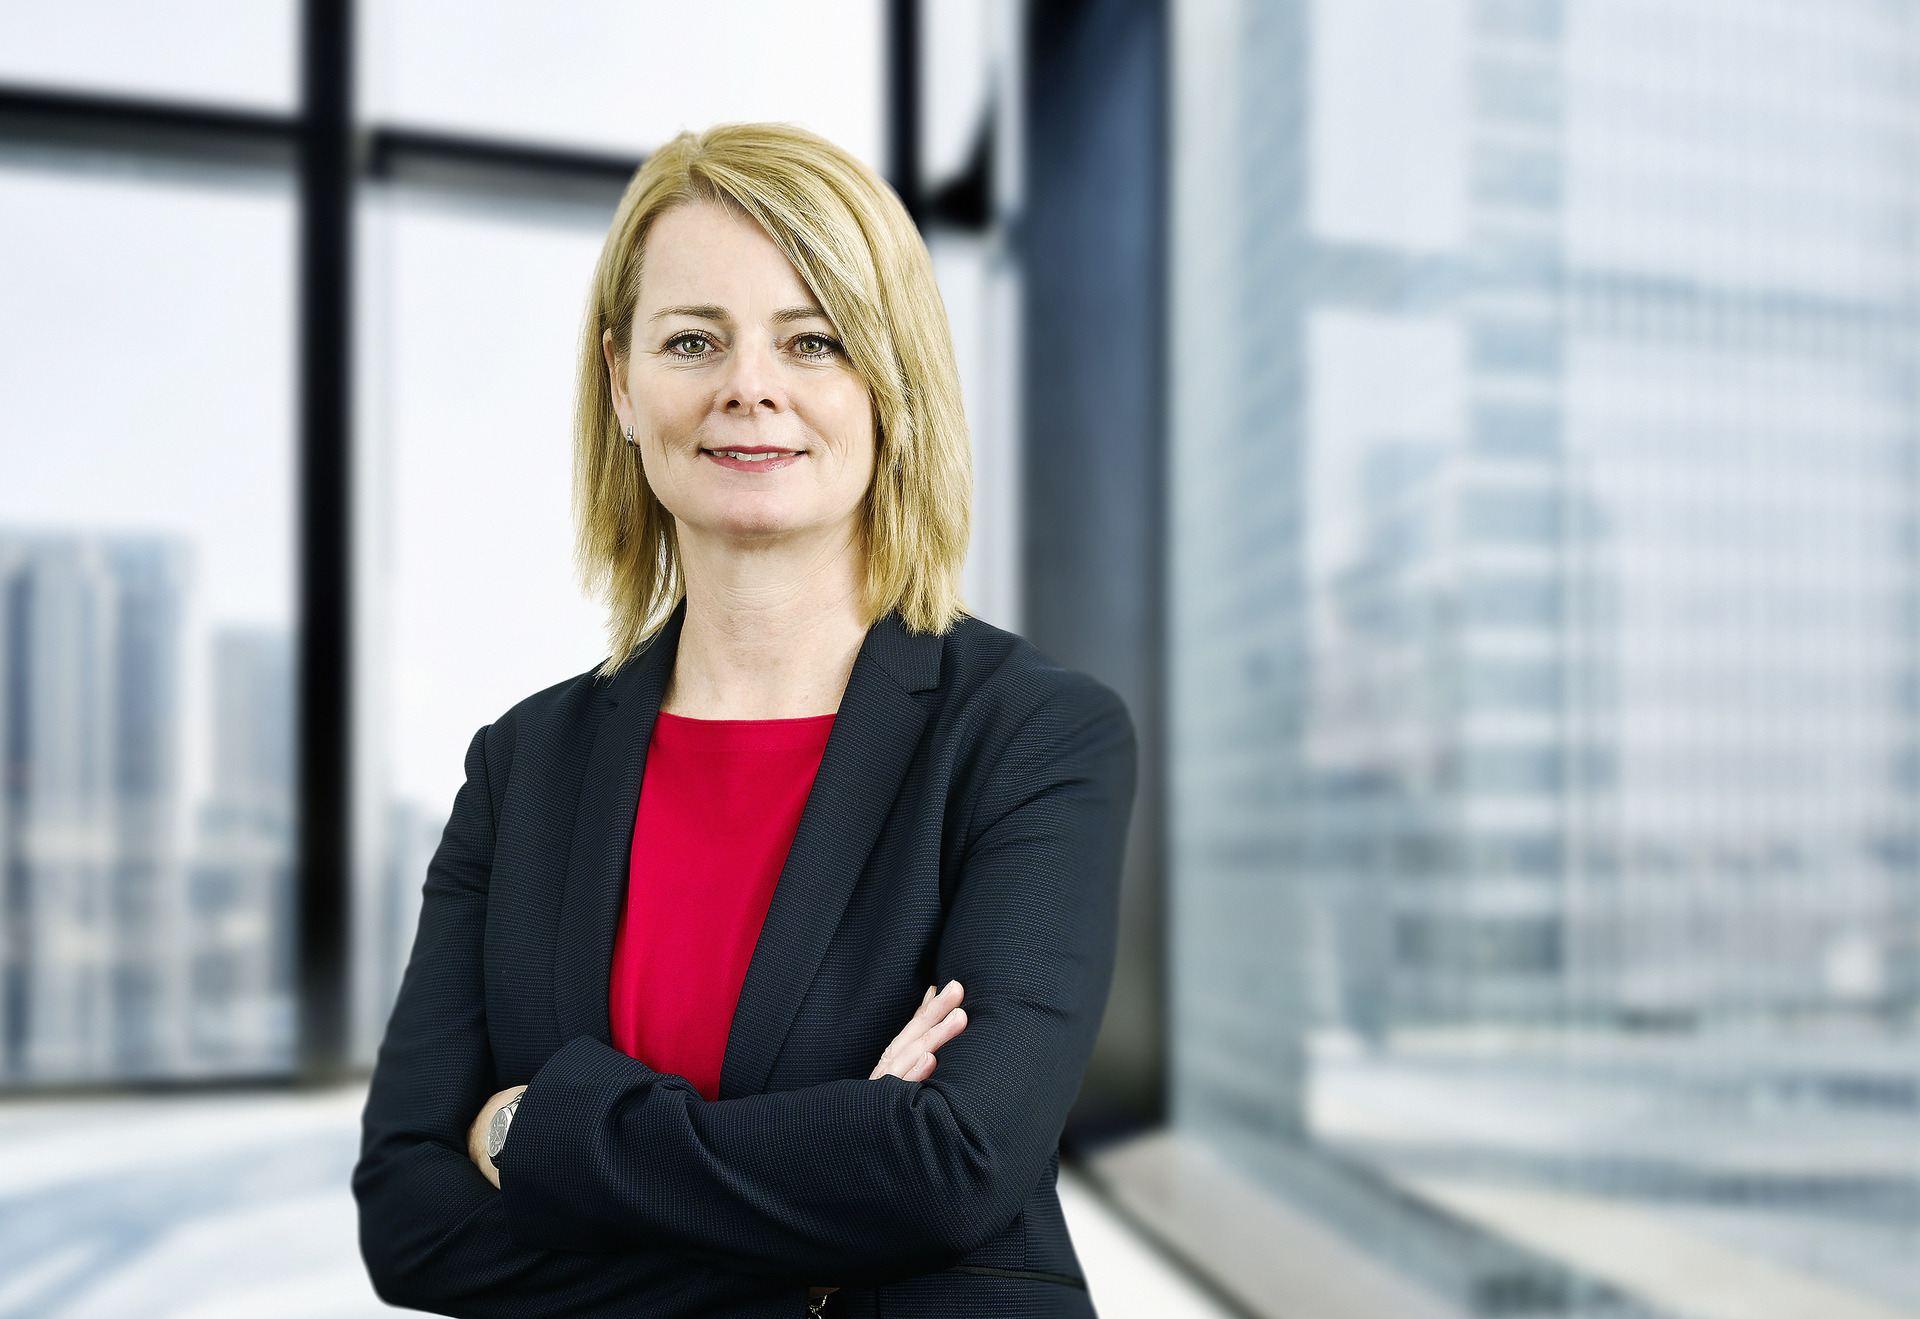 Frederique van Baarle to head LANXESS High Performance Materials business unit